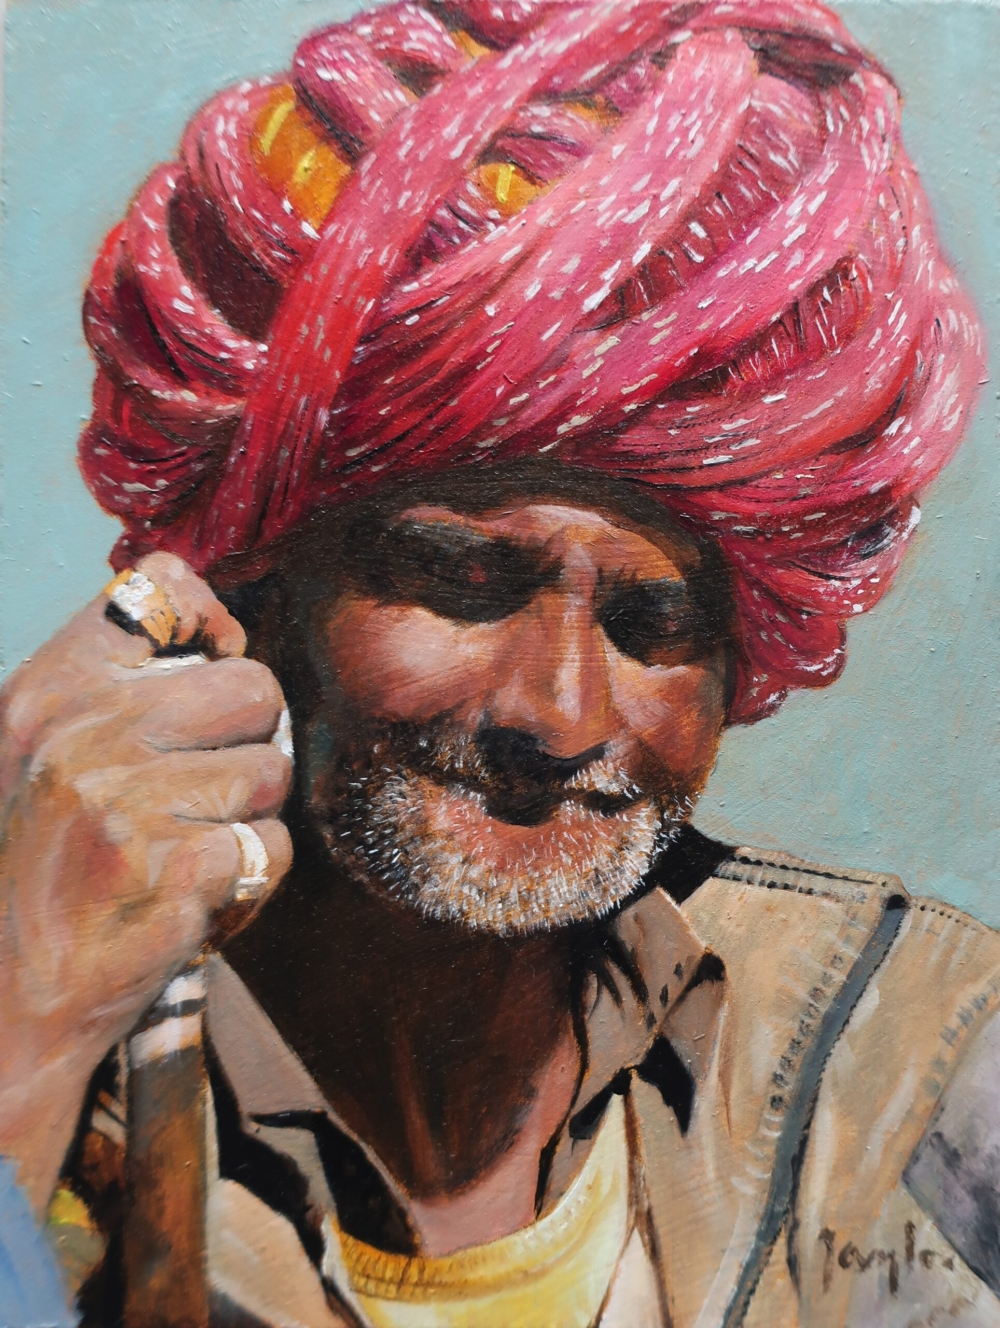 Oil Painting of a character from Ahore Rajasthan